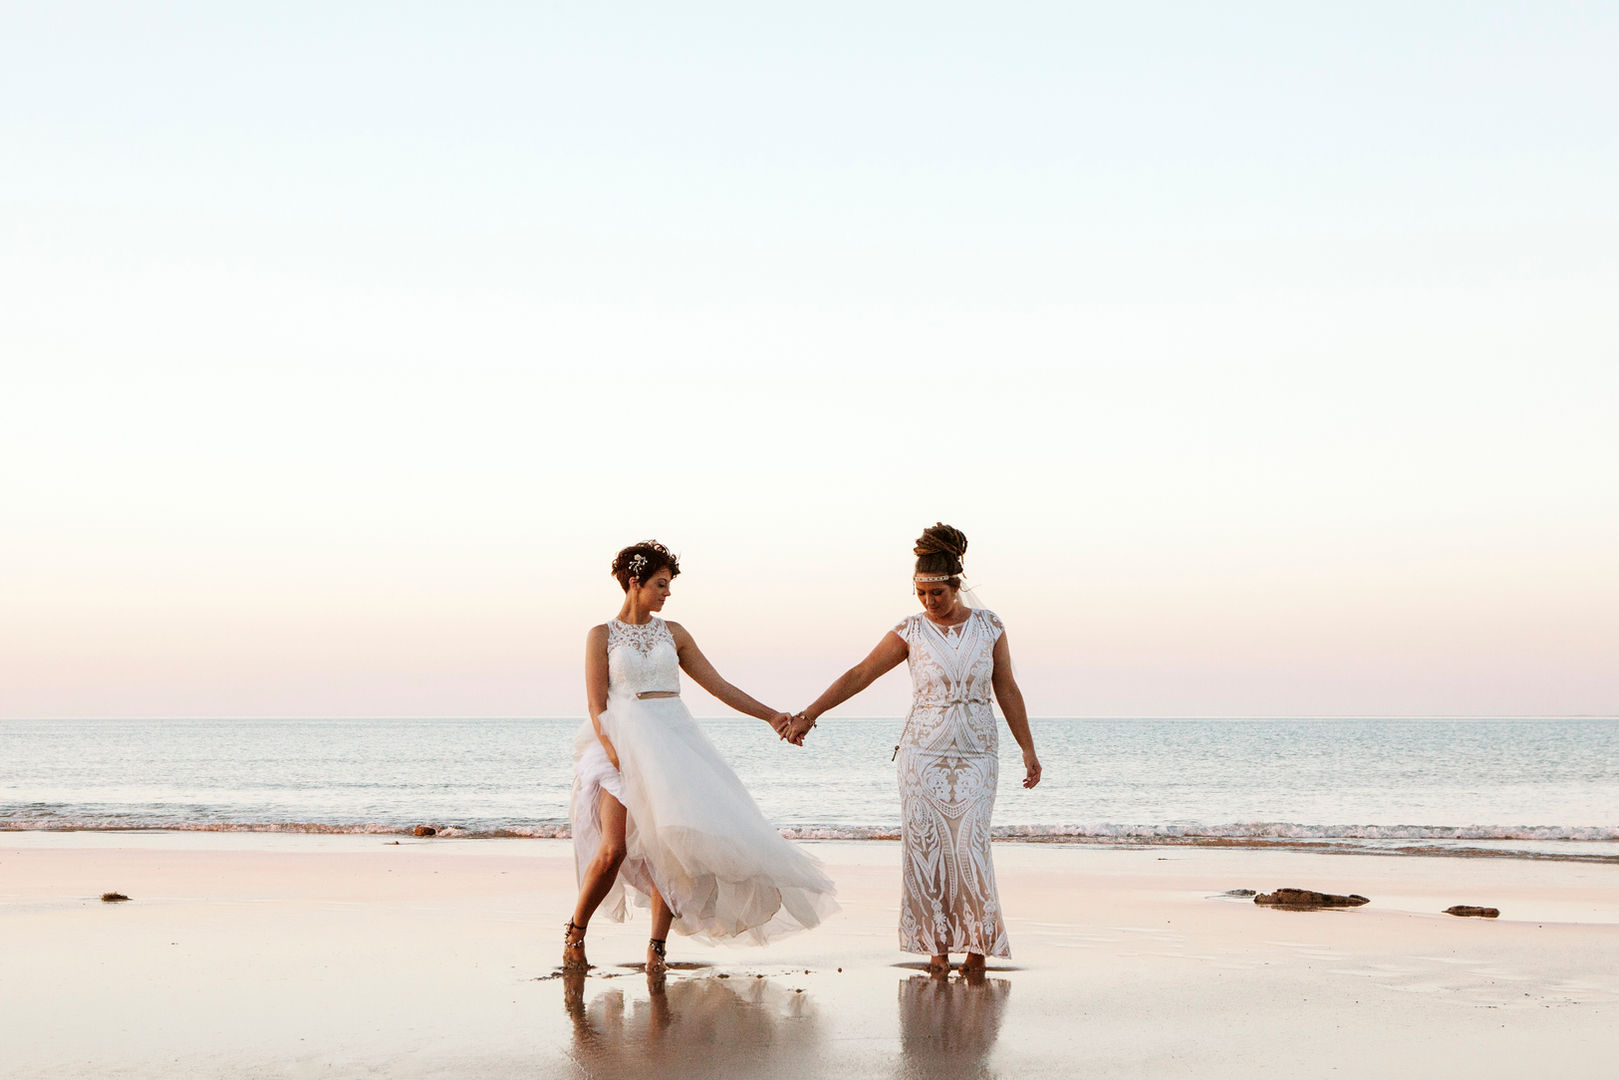 Two brides on their wedding day on the beach in Eco Beach, Western Australia.